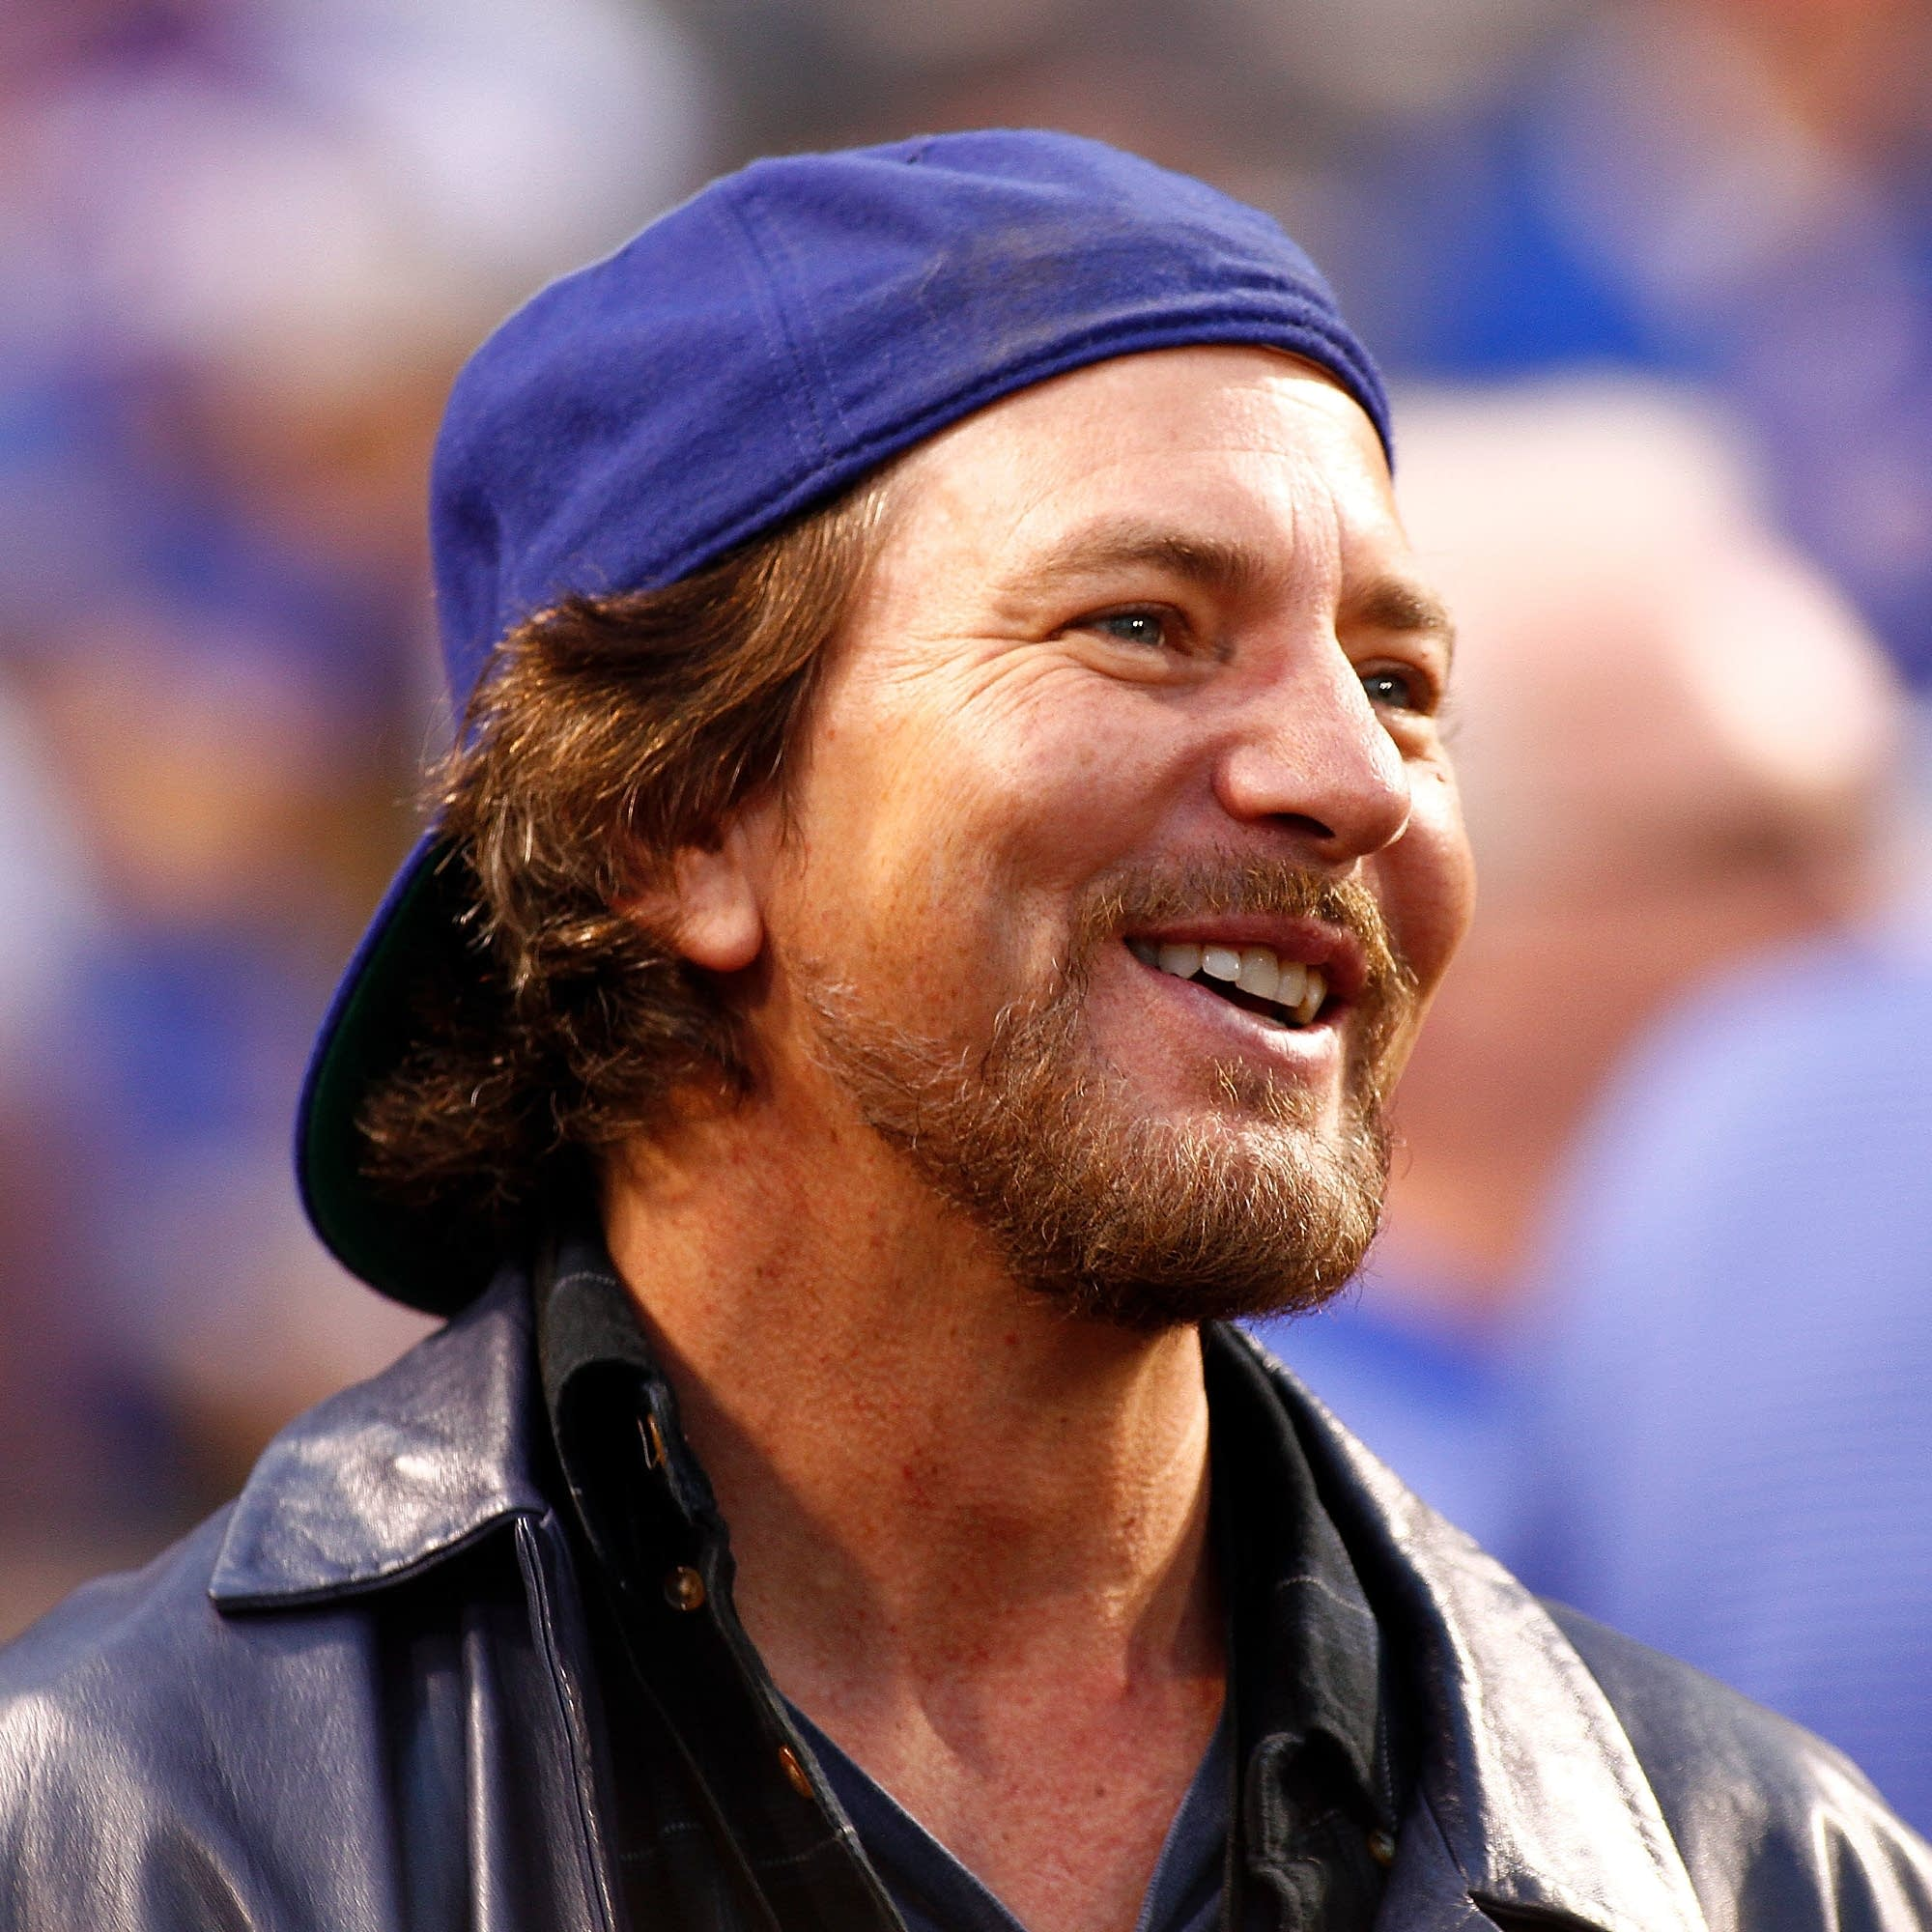 Eddie Vedder at a Cubs game in 2015.